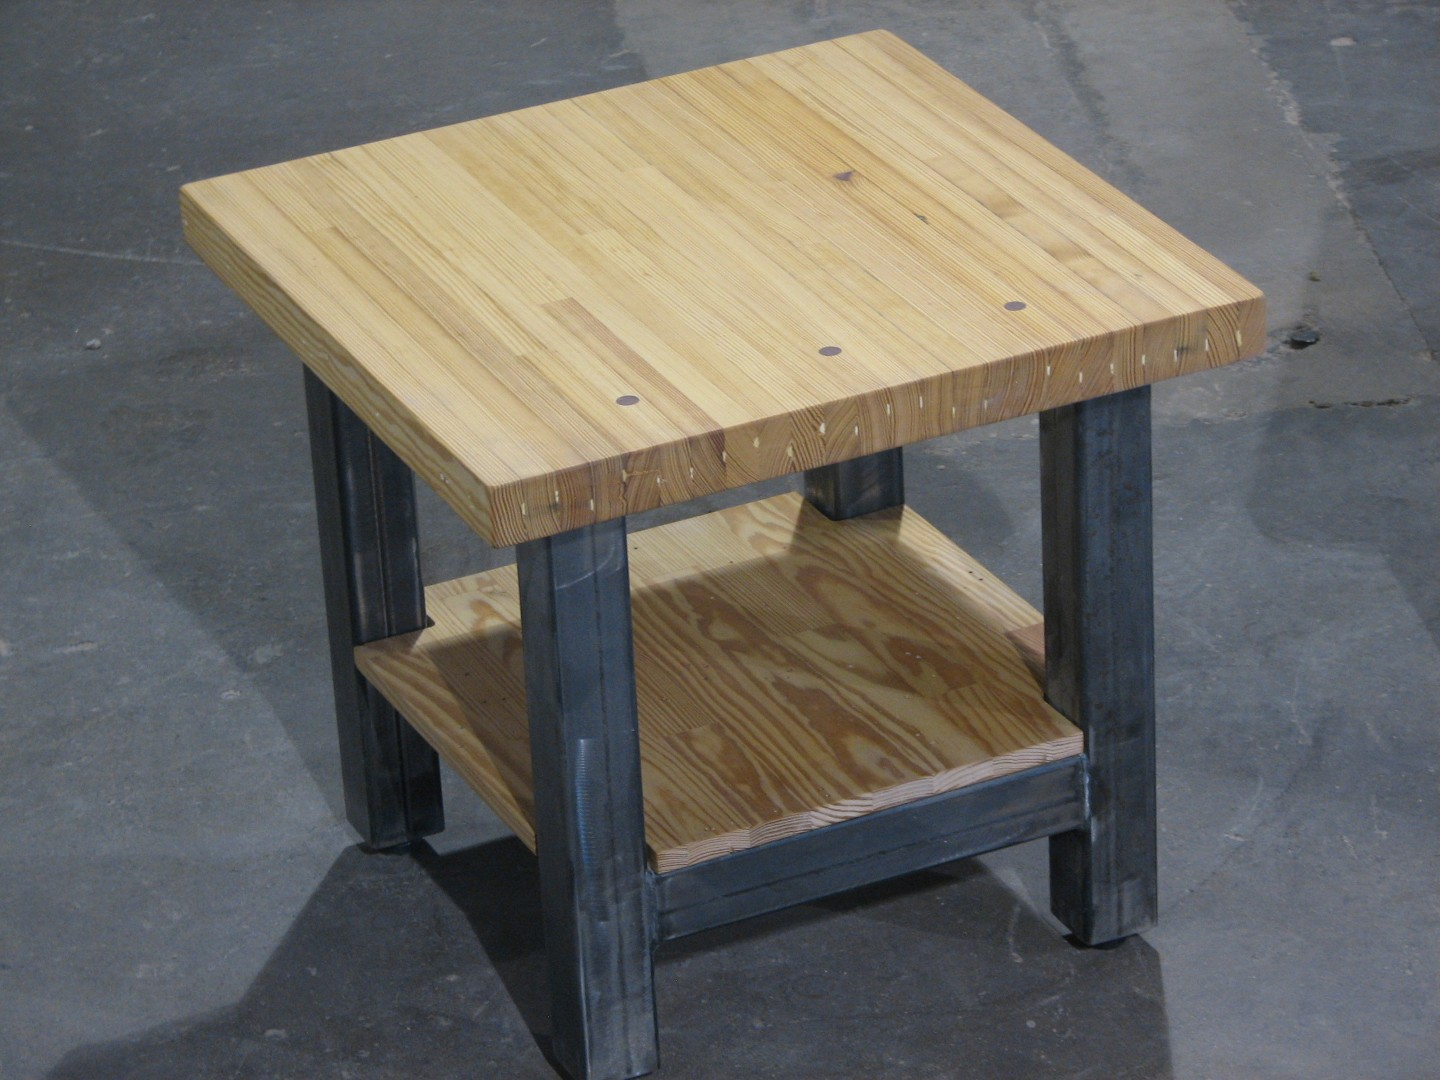 ... Bowling Alley End Table U2013 Chamberlin Series ...